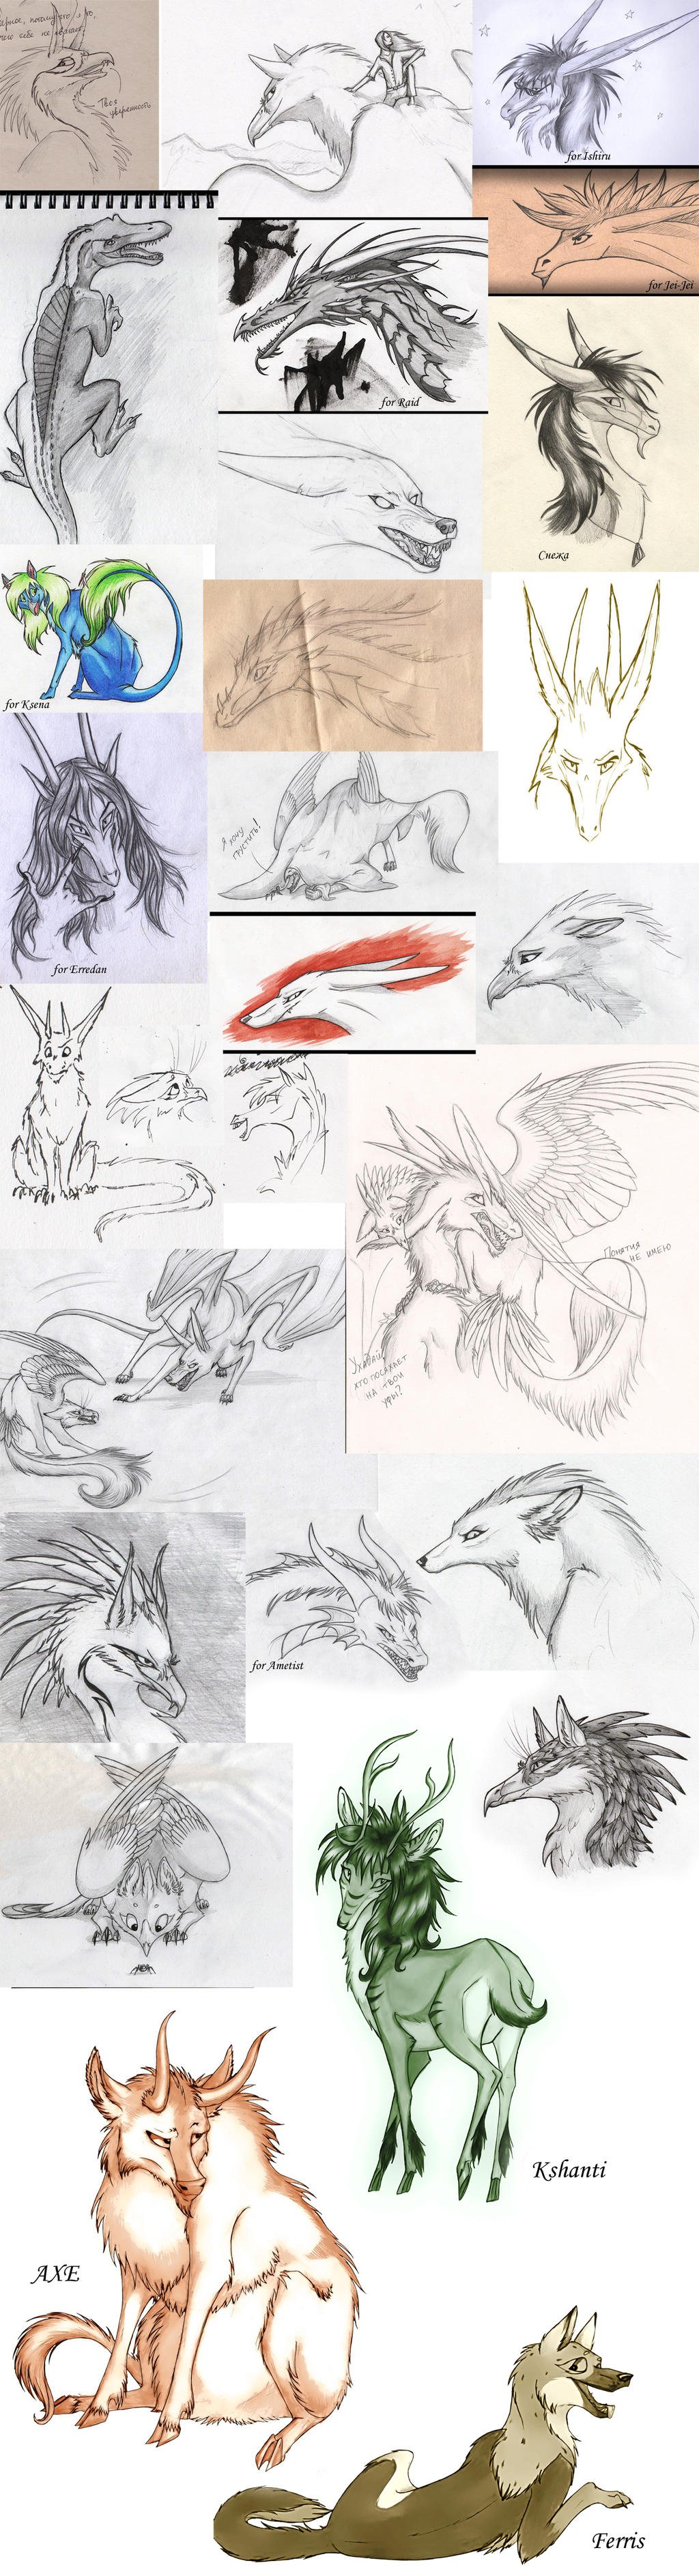 Sketchdump by Chickenzaur